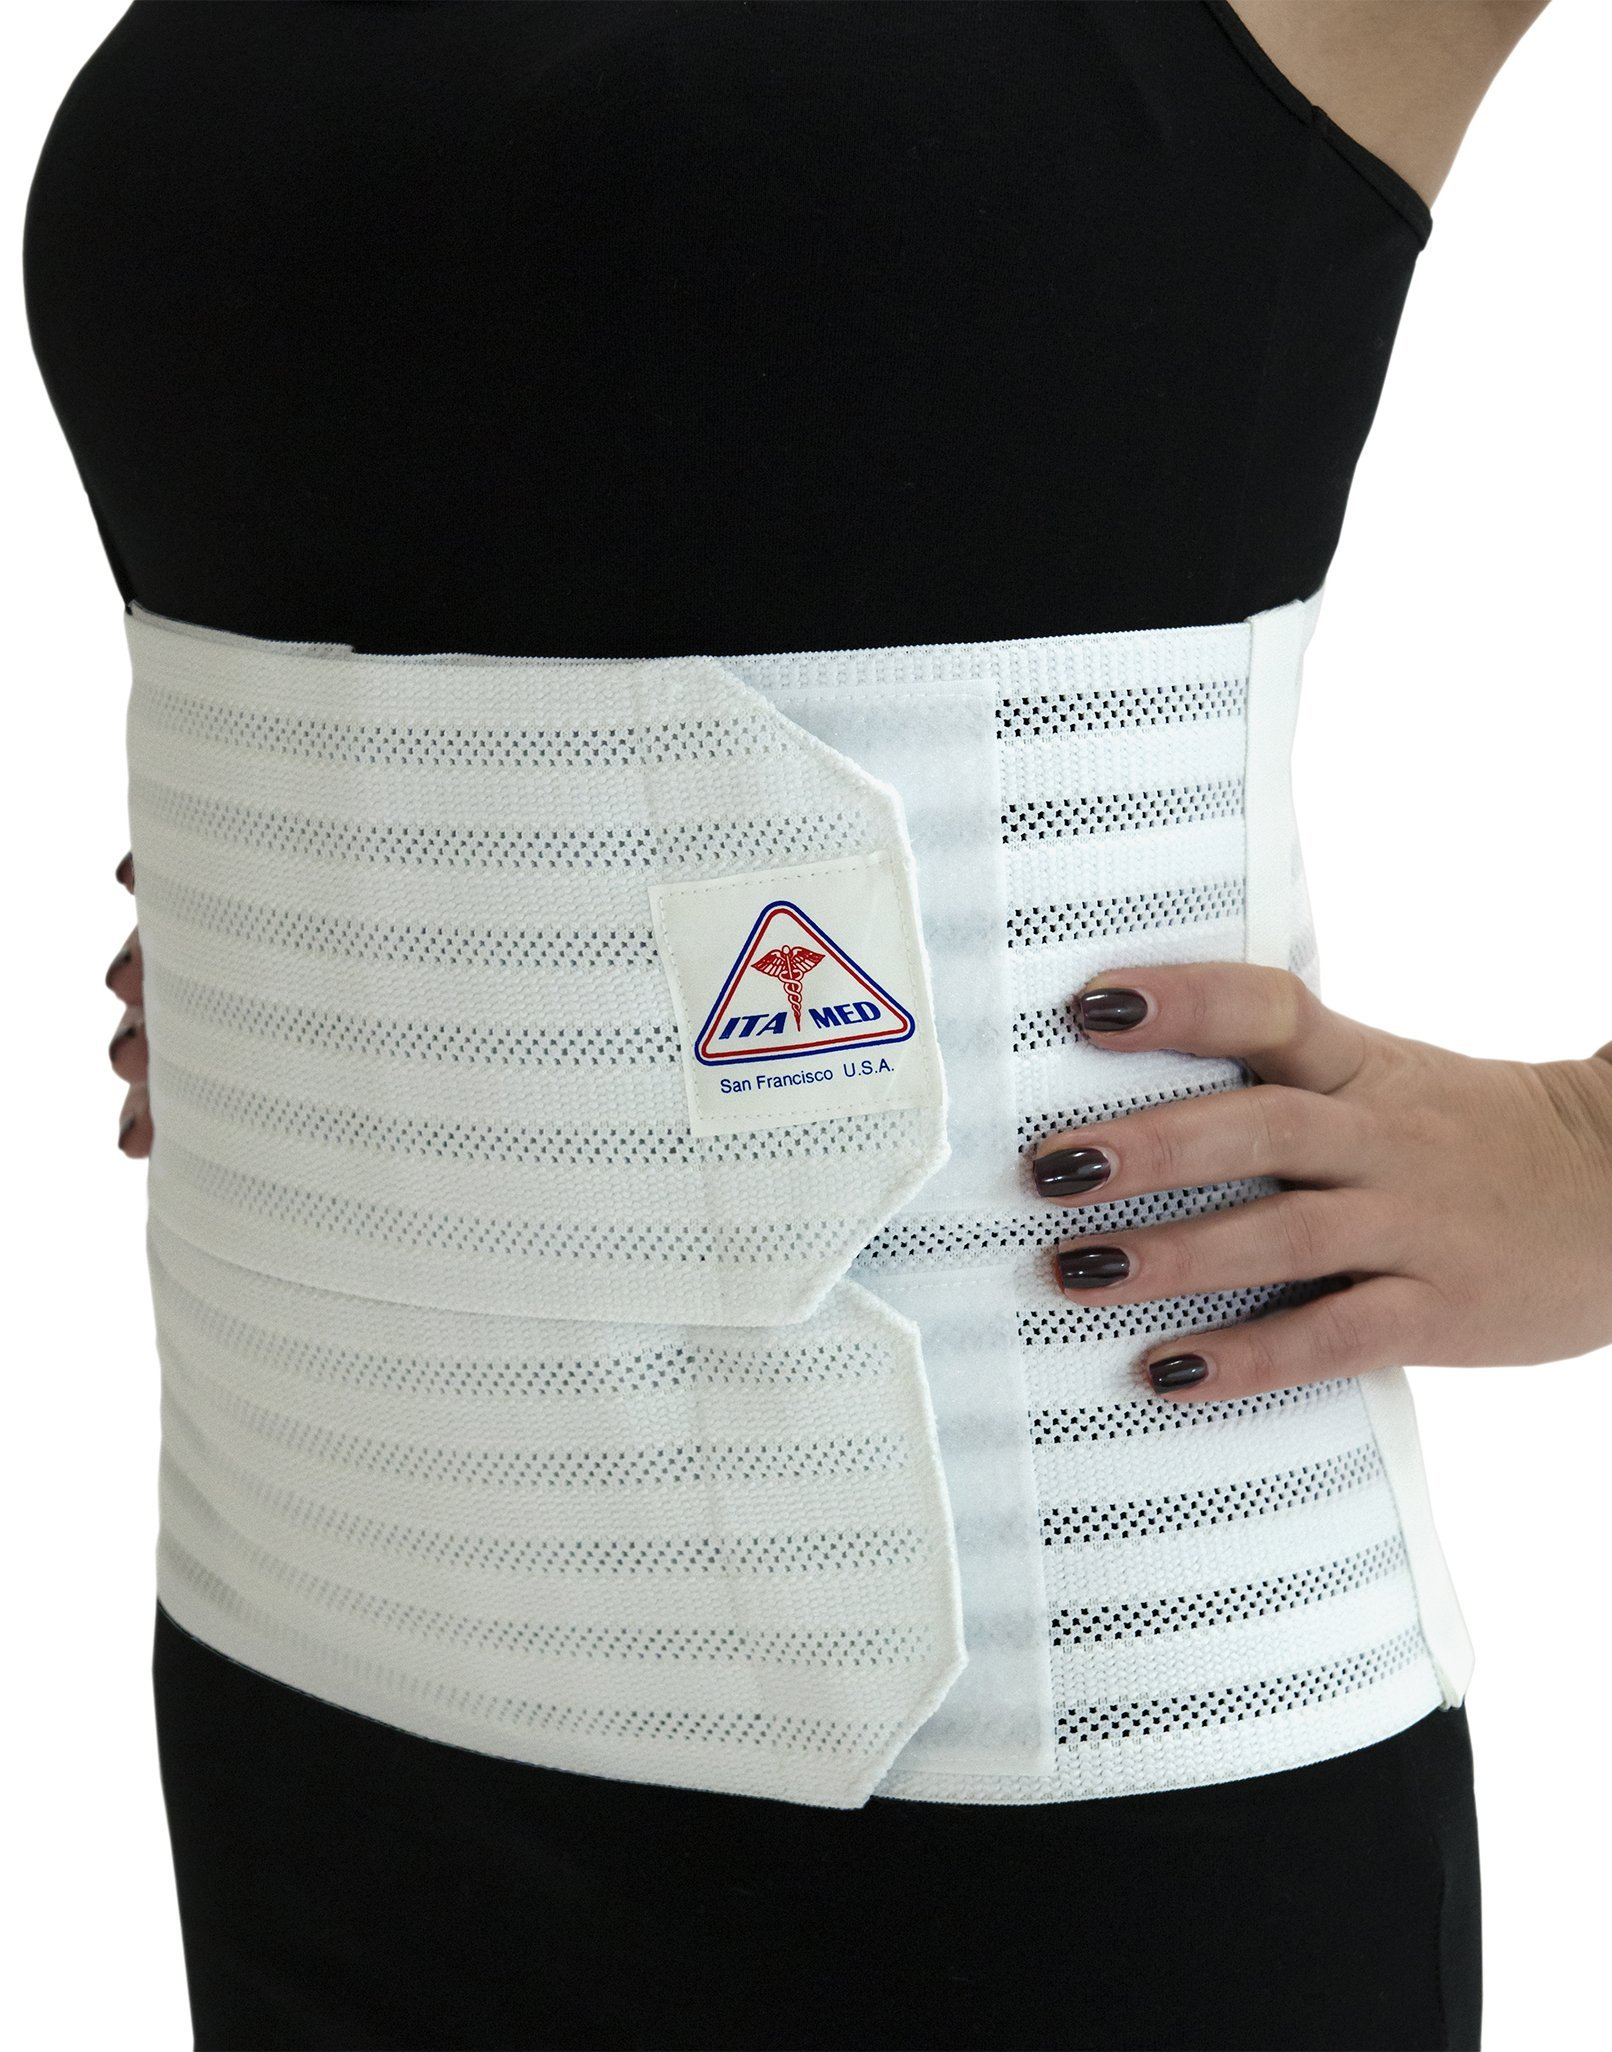 Ita-med Breathable Elastic Abdominal Binder for Women, White, XL